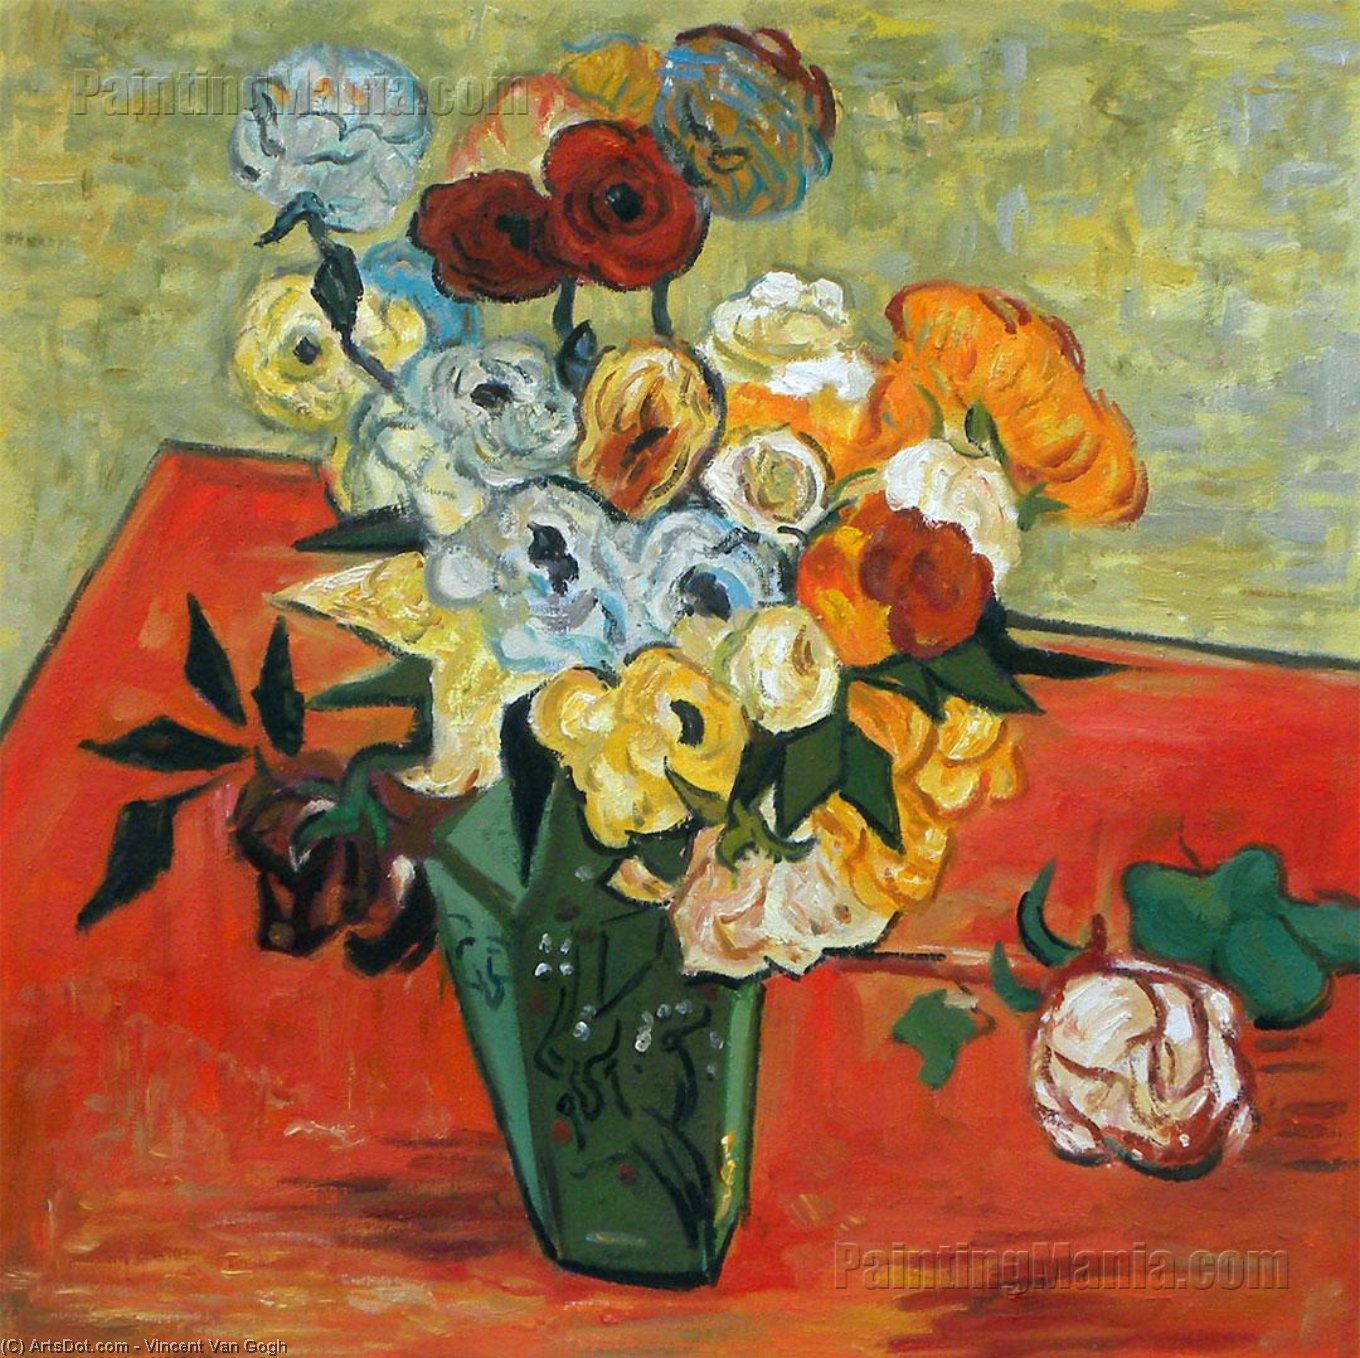 Wikioo.org - The Encyclopedia of Fine Arts - Painting, Artwork by Vincent Van Gogh - Still Life Japanese Vase with Roses and Anemones